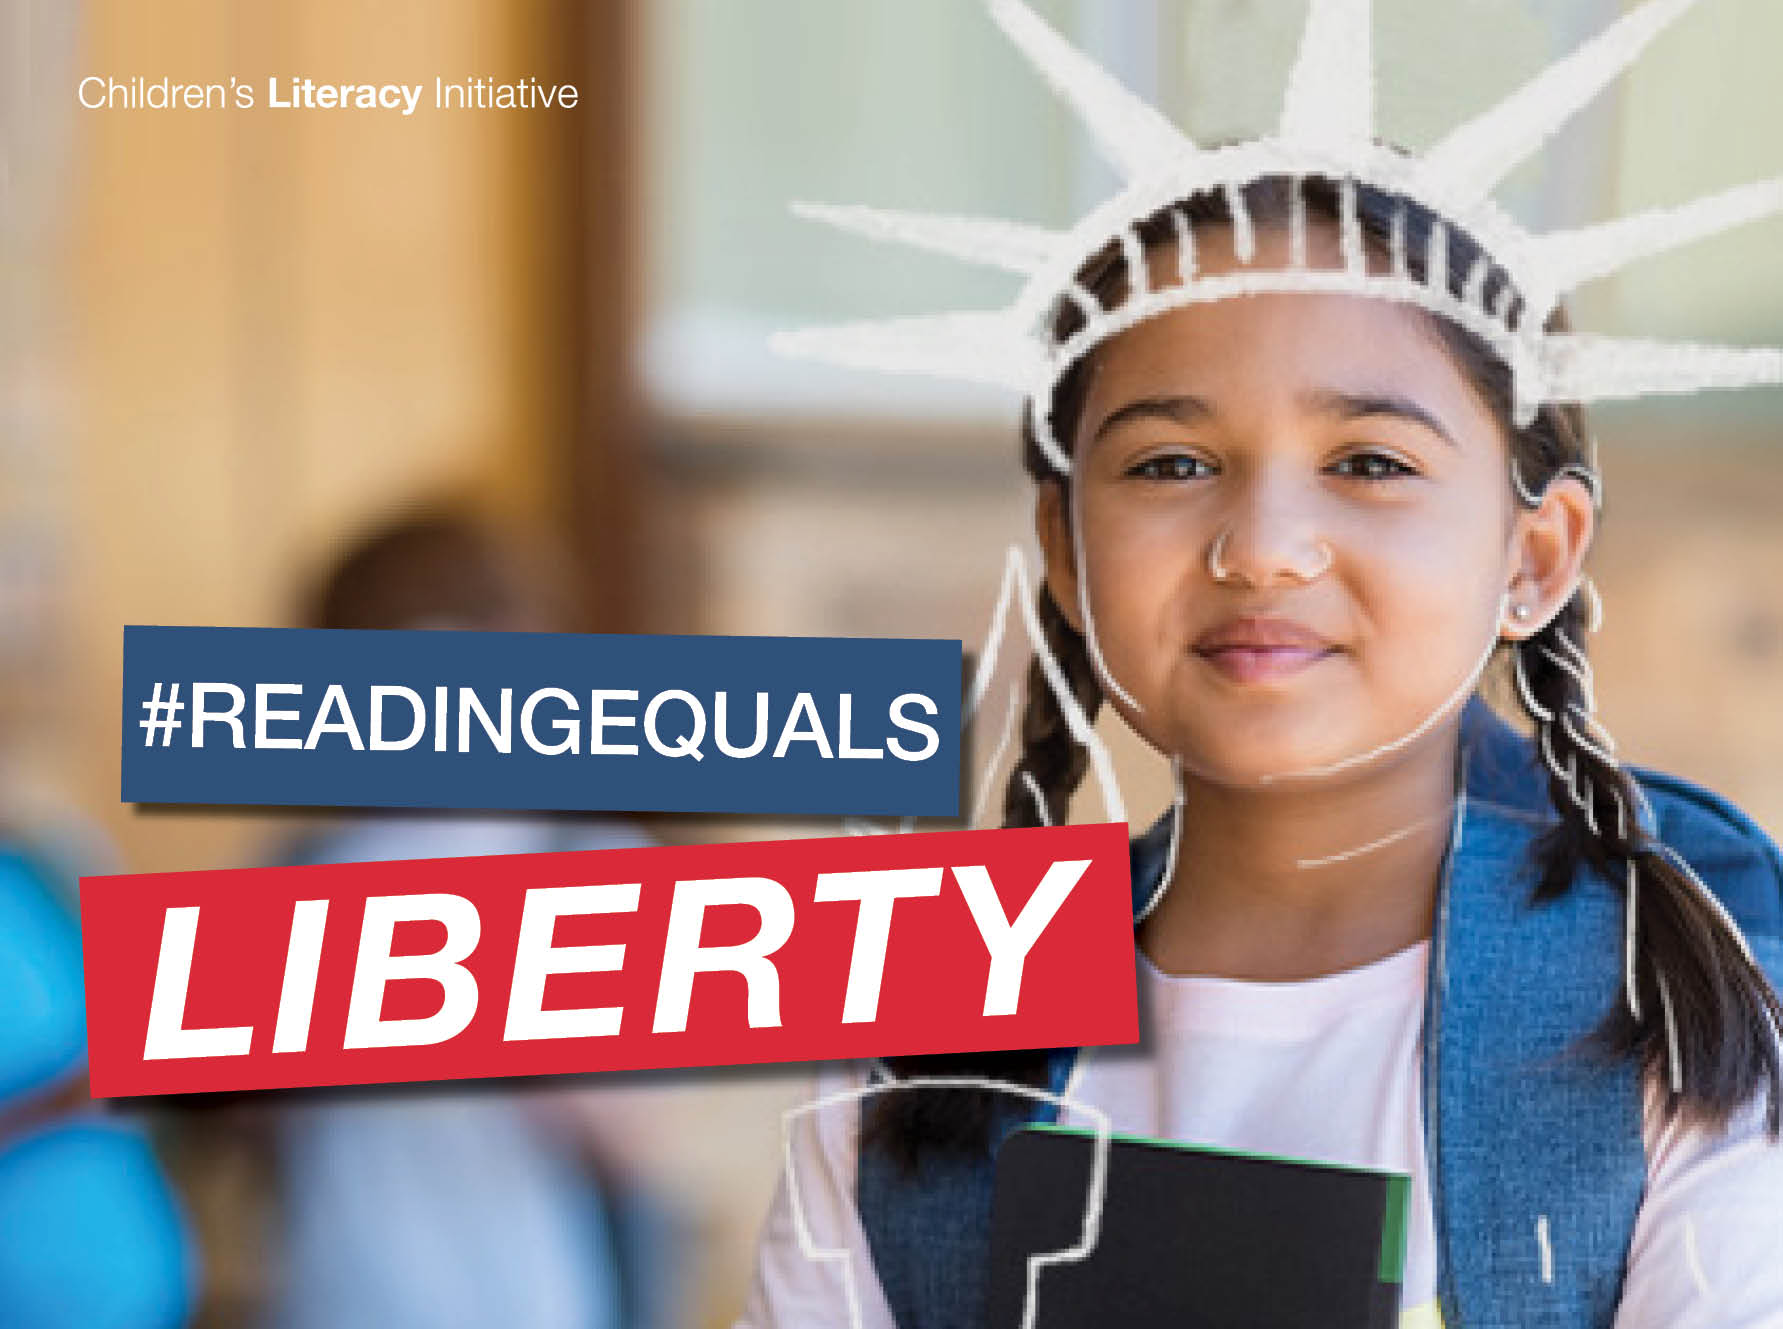 #ReadingEquals #Liberty